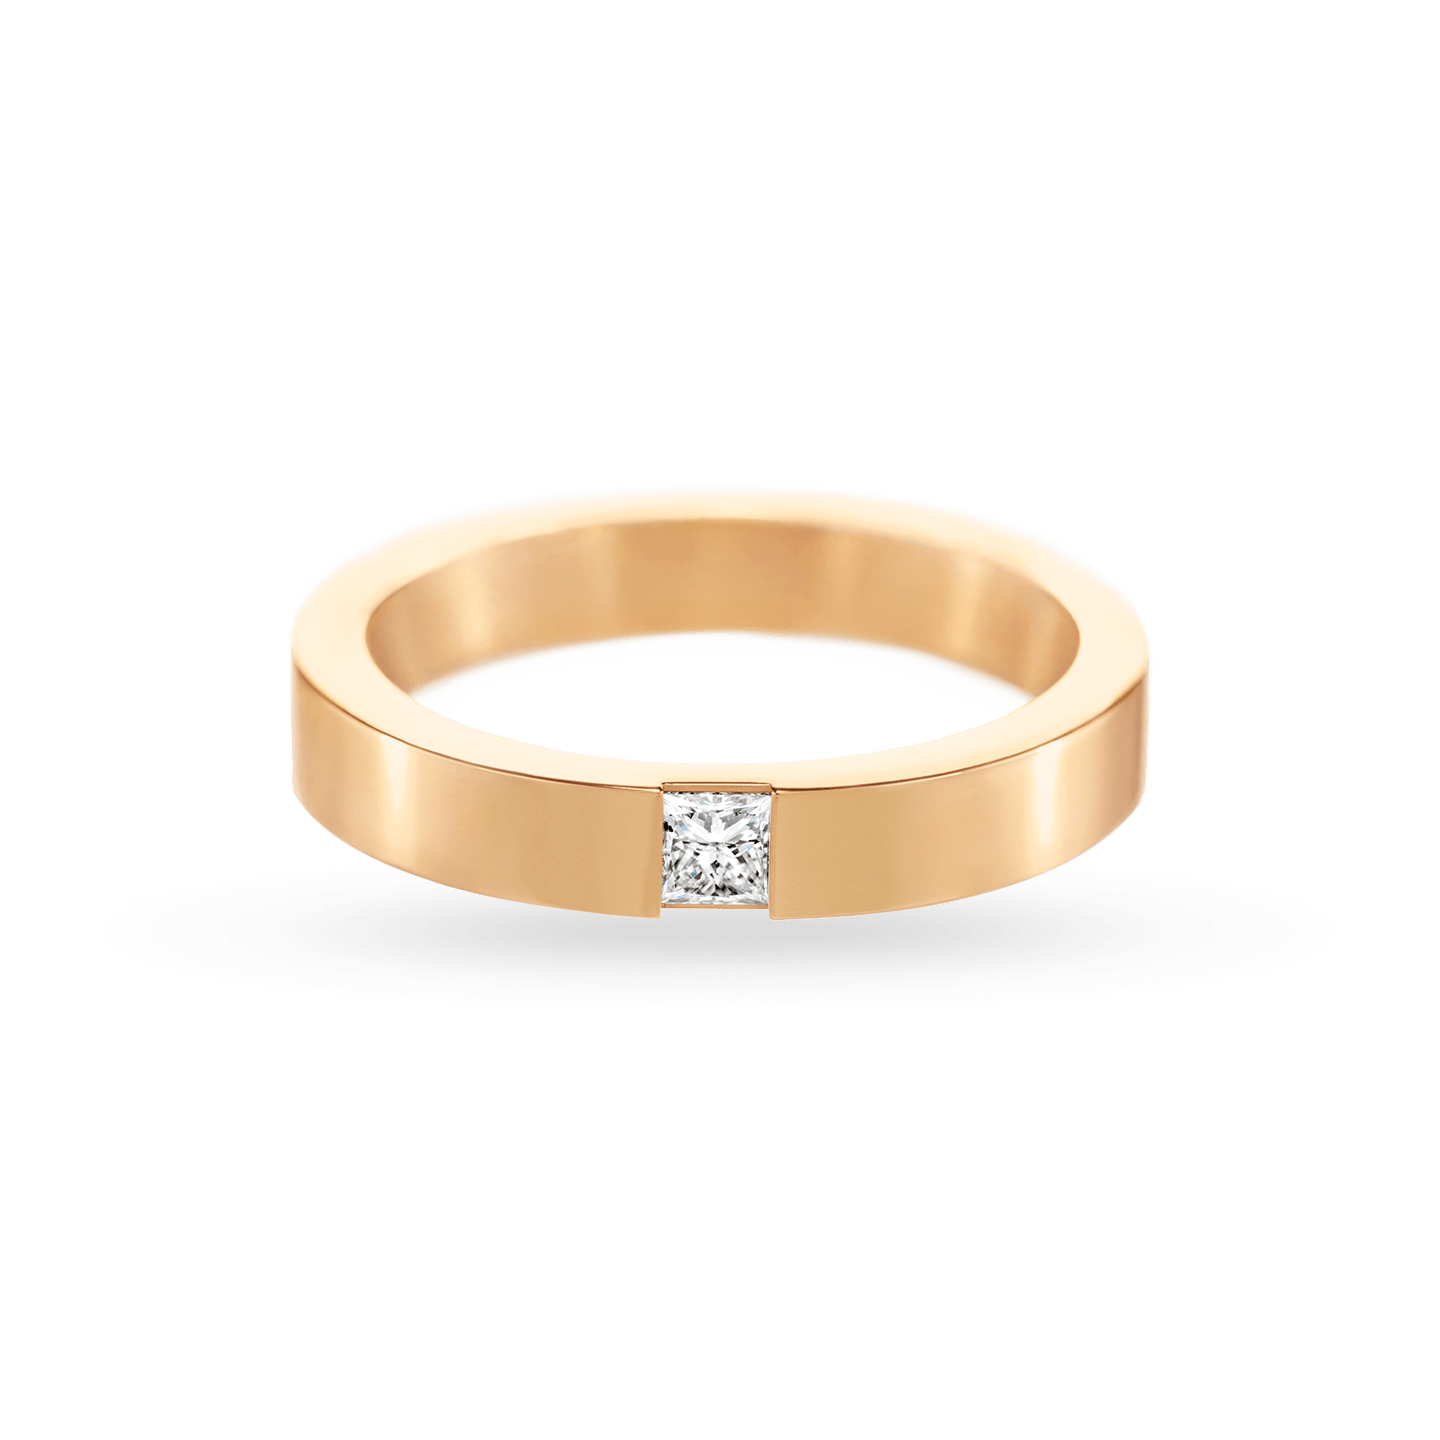 Princess-Cut Single Diamond Wedding Band in Yellow Gold, Product Image 2